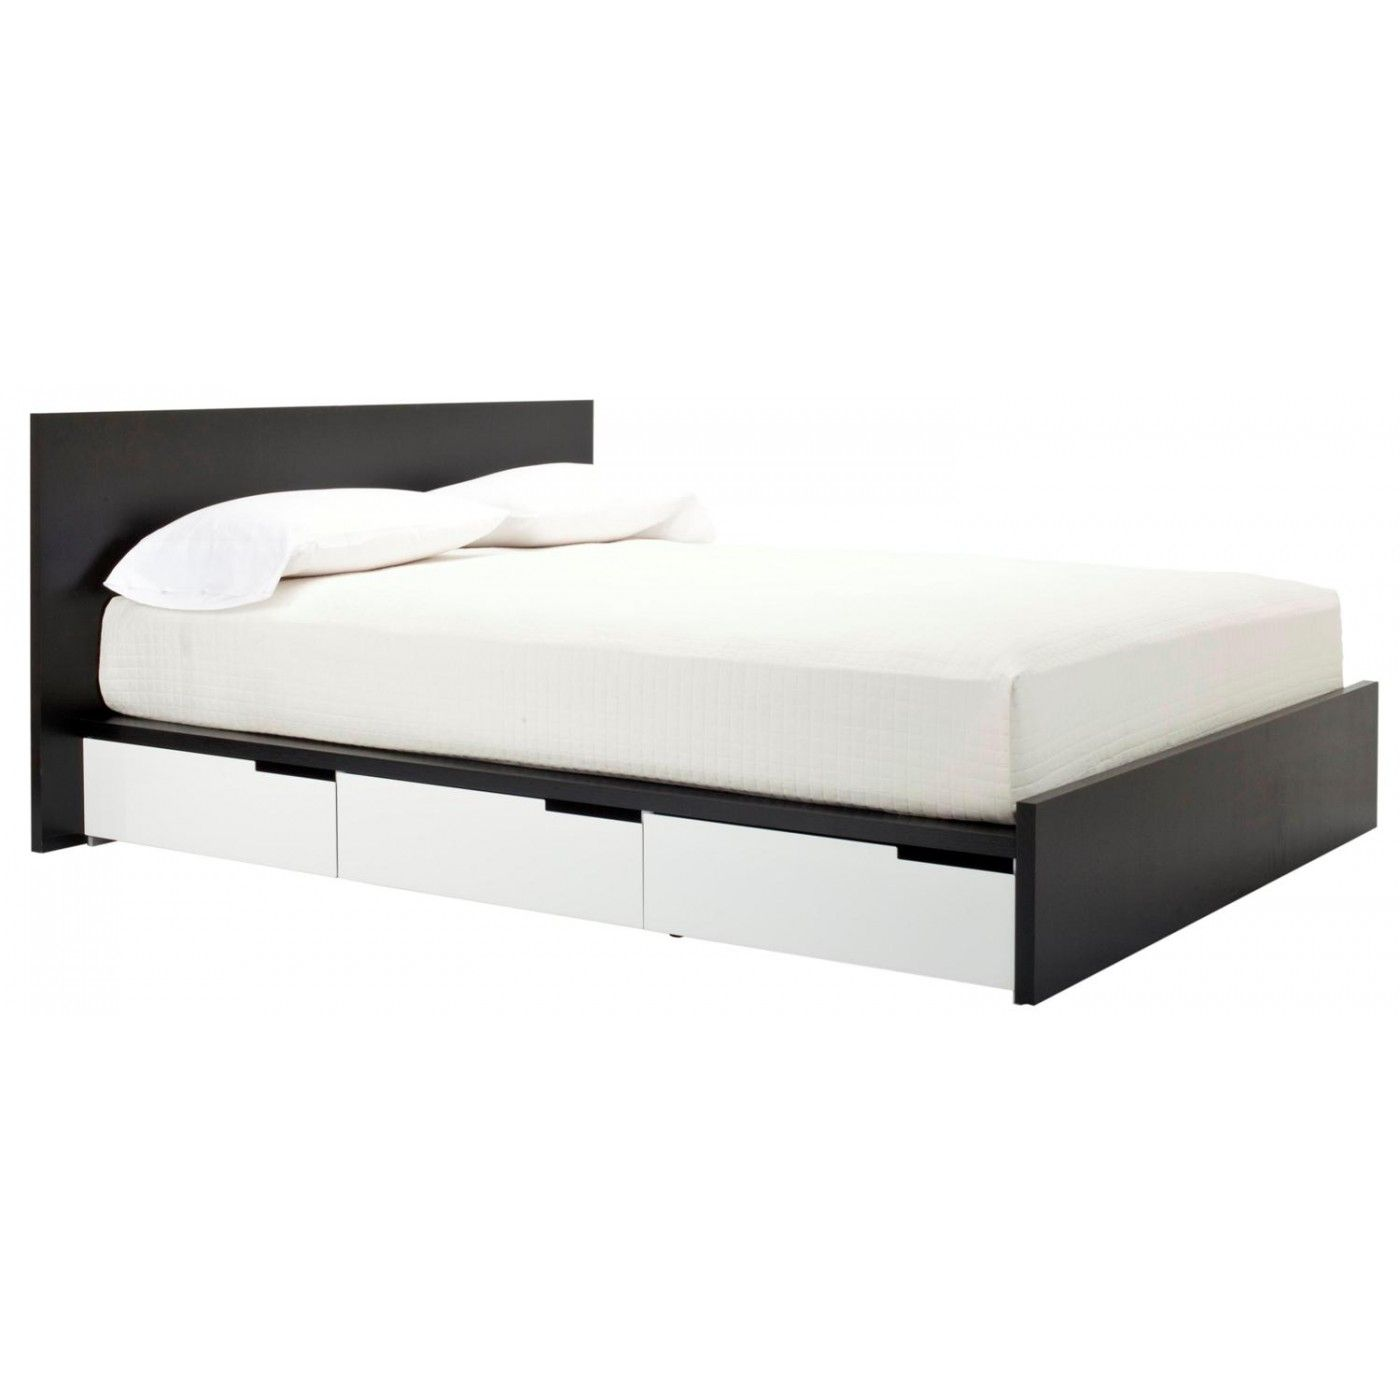 Queen storage bed oak white iud live with that pinterest